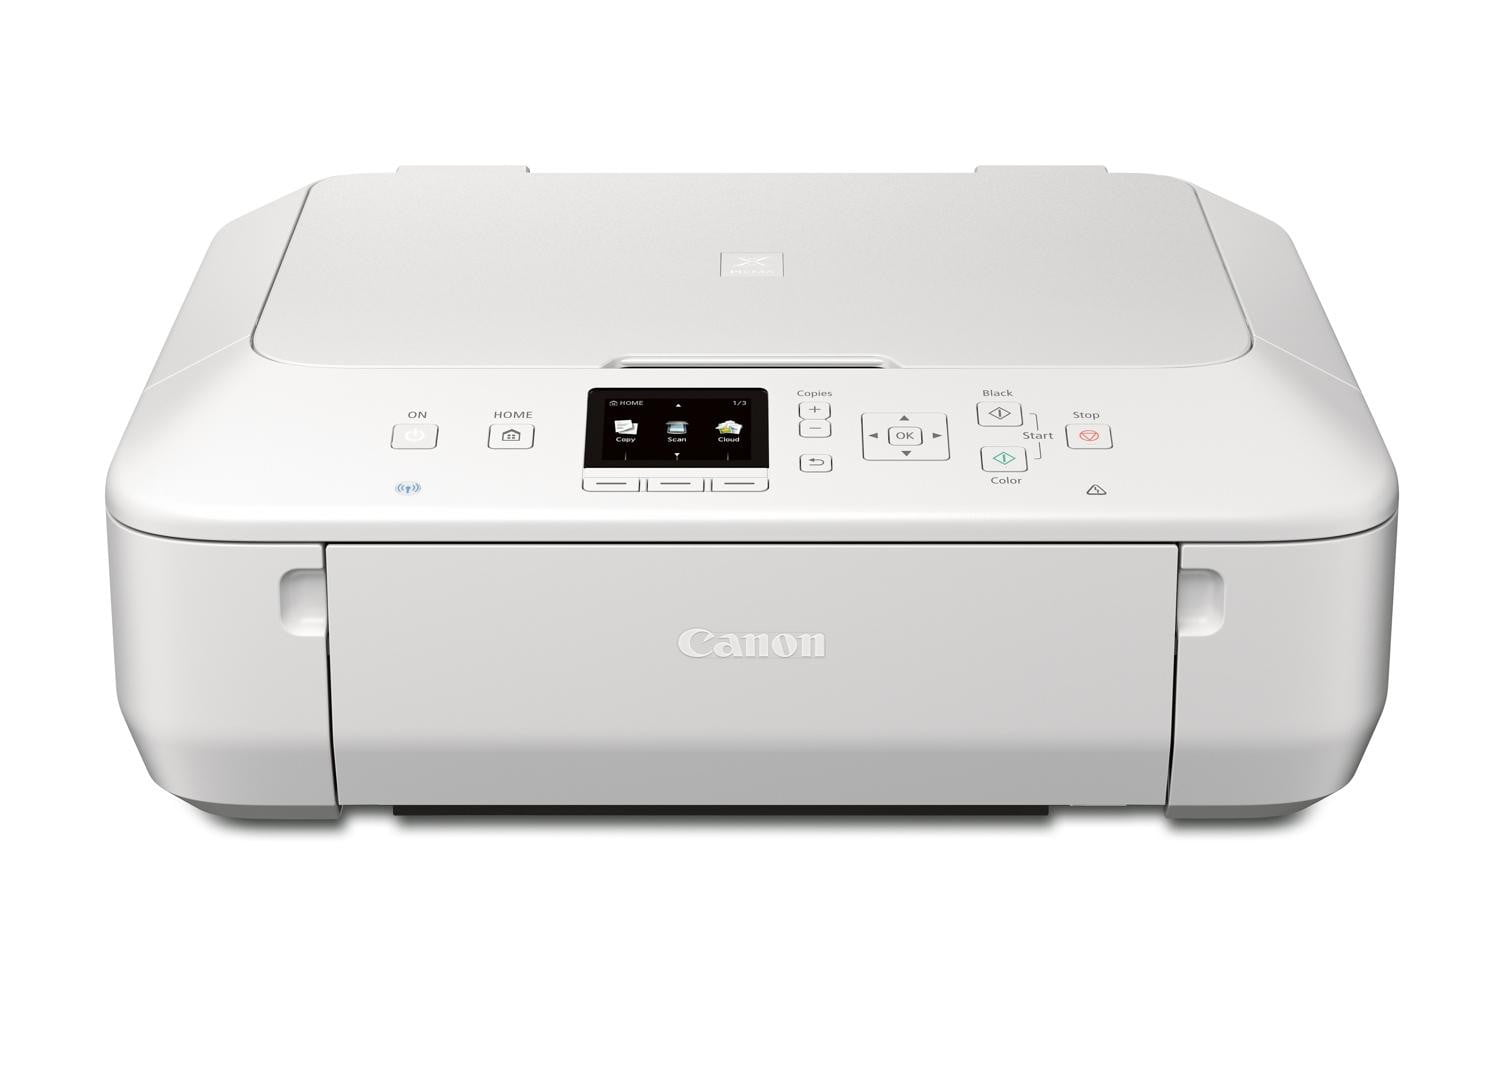 Canon unveils Pixma MG7120, MG5520 printers | What to know